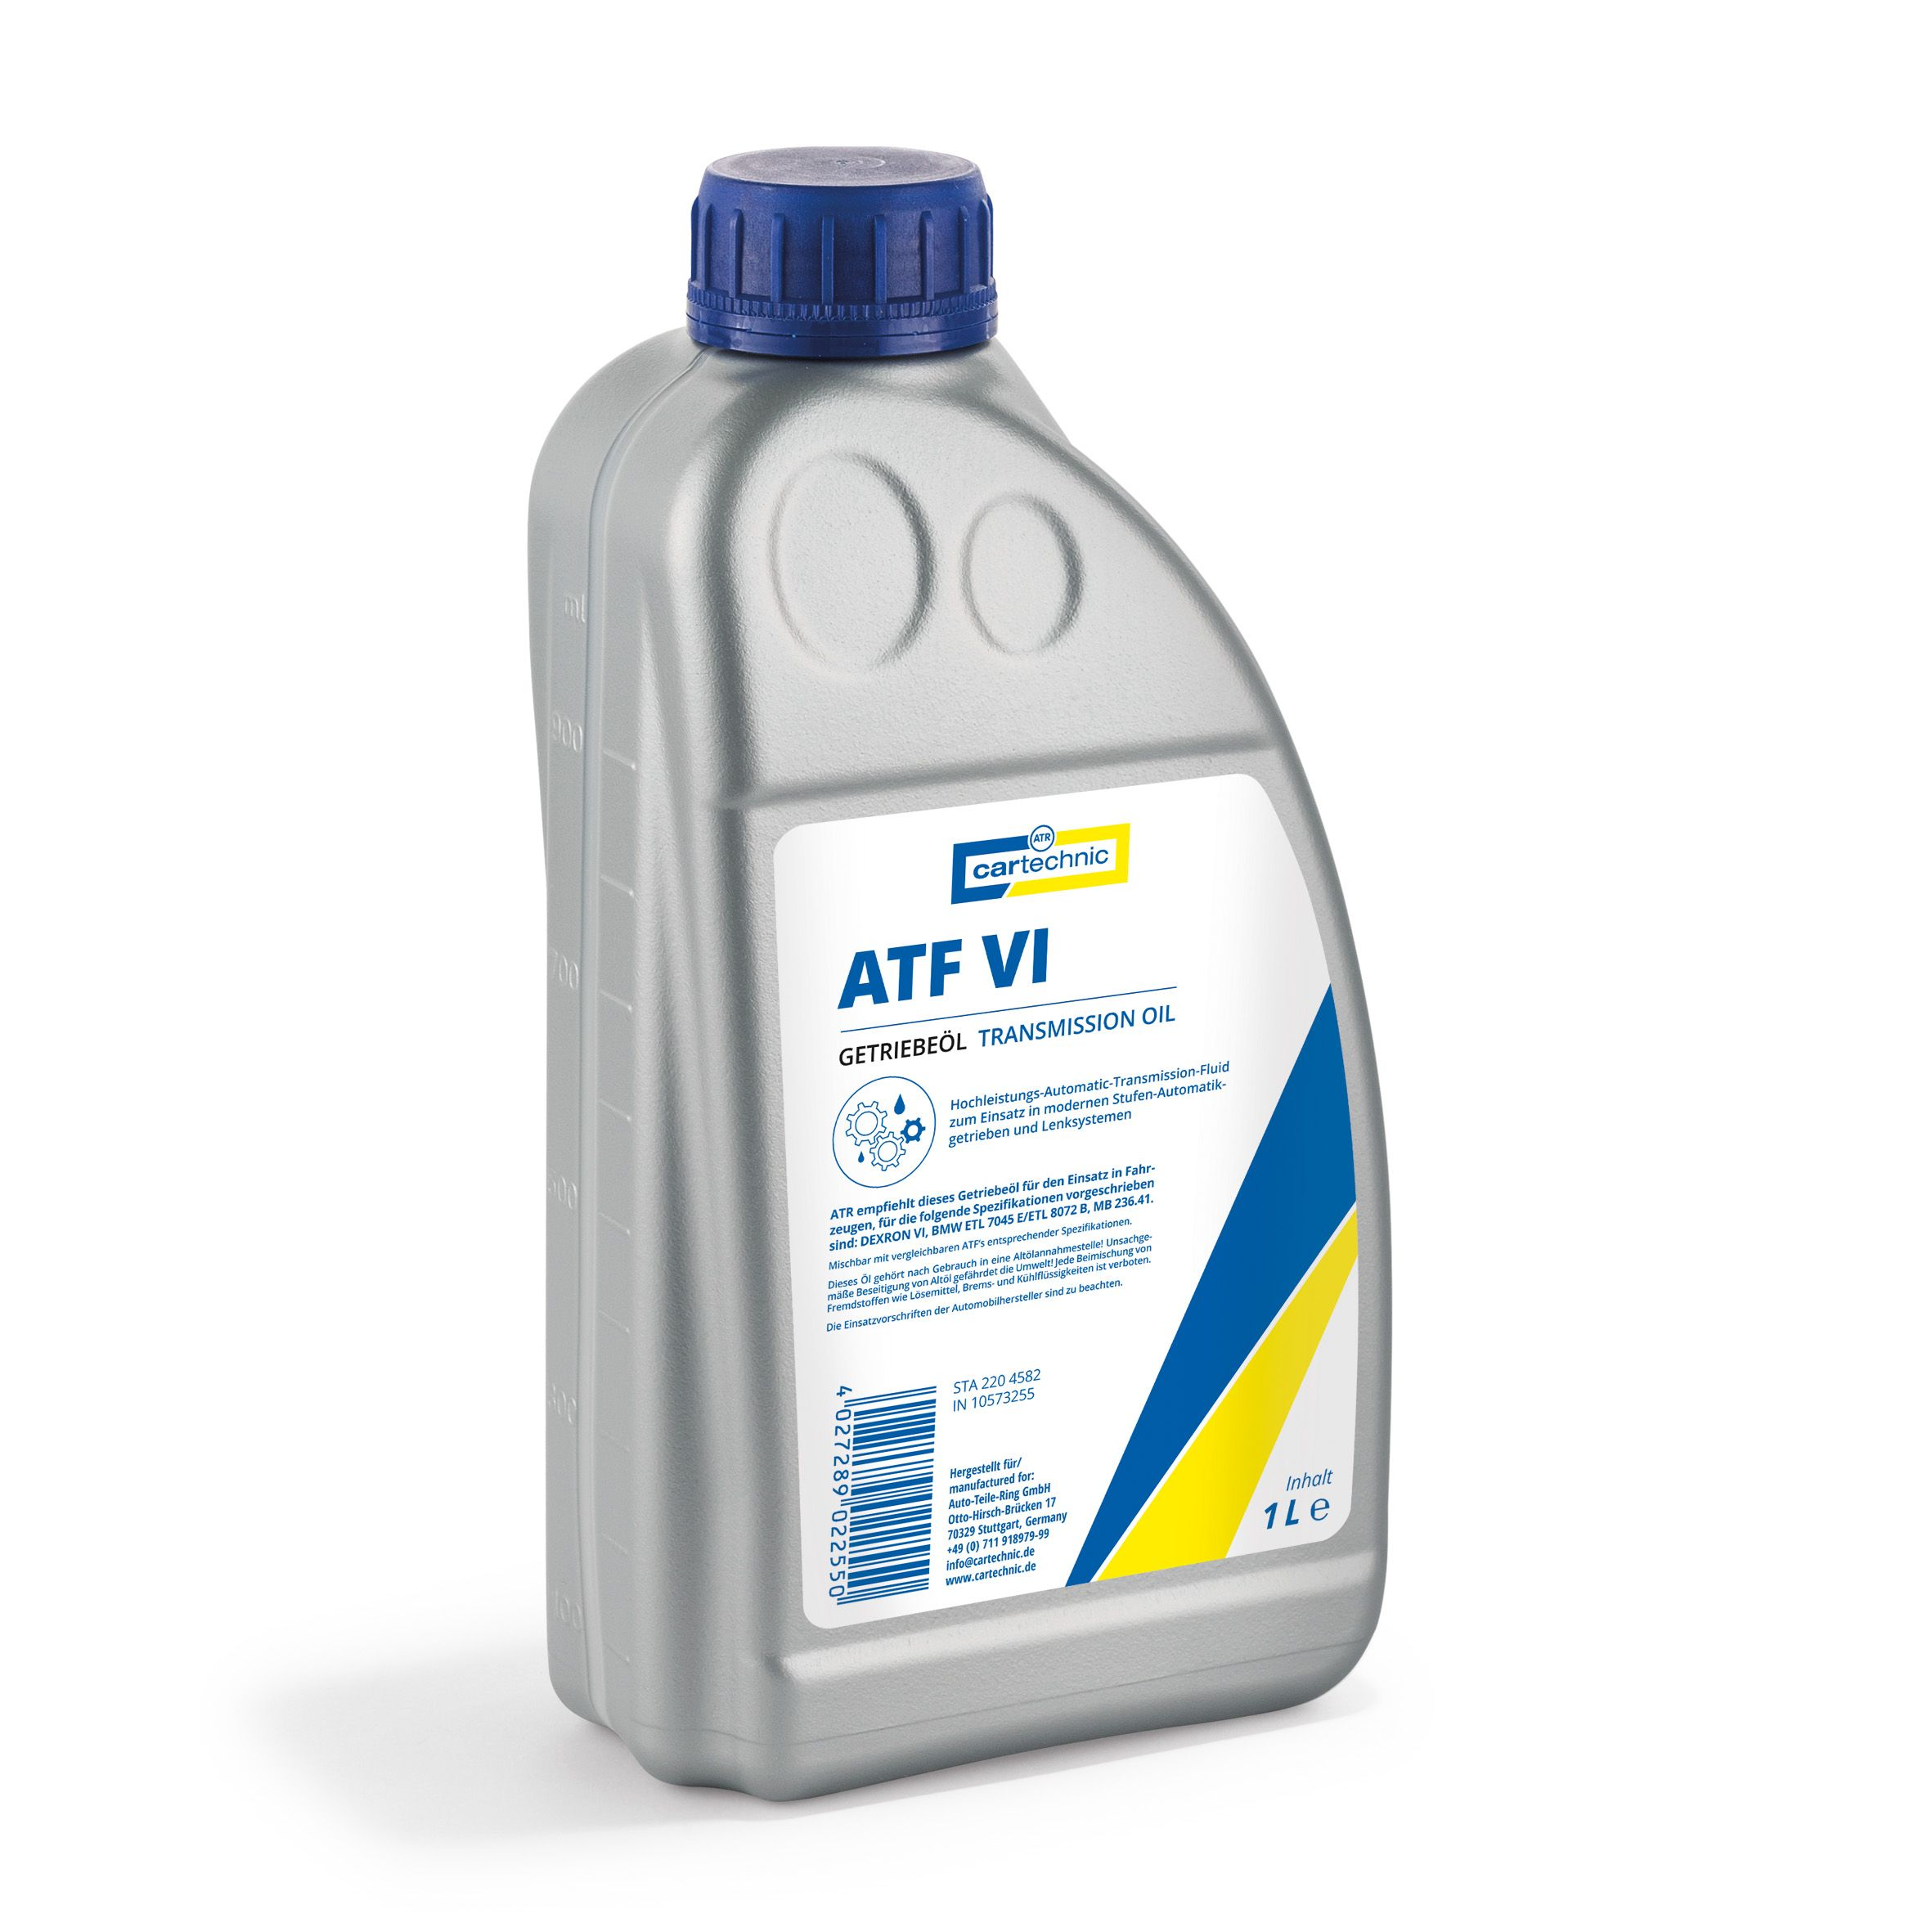 CARTECHRO Transmission oil ATF VI 1 liter 25036-114-J2